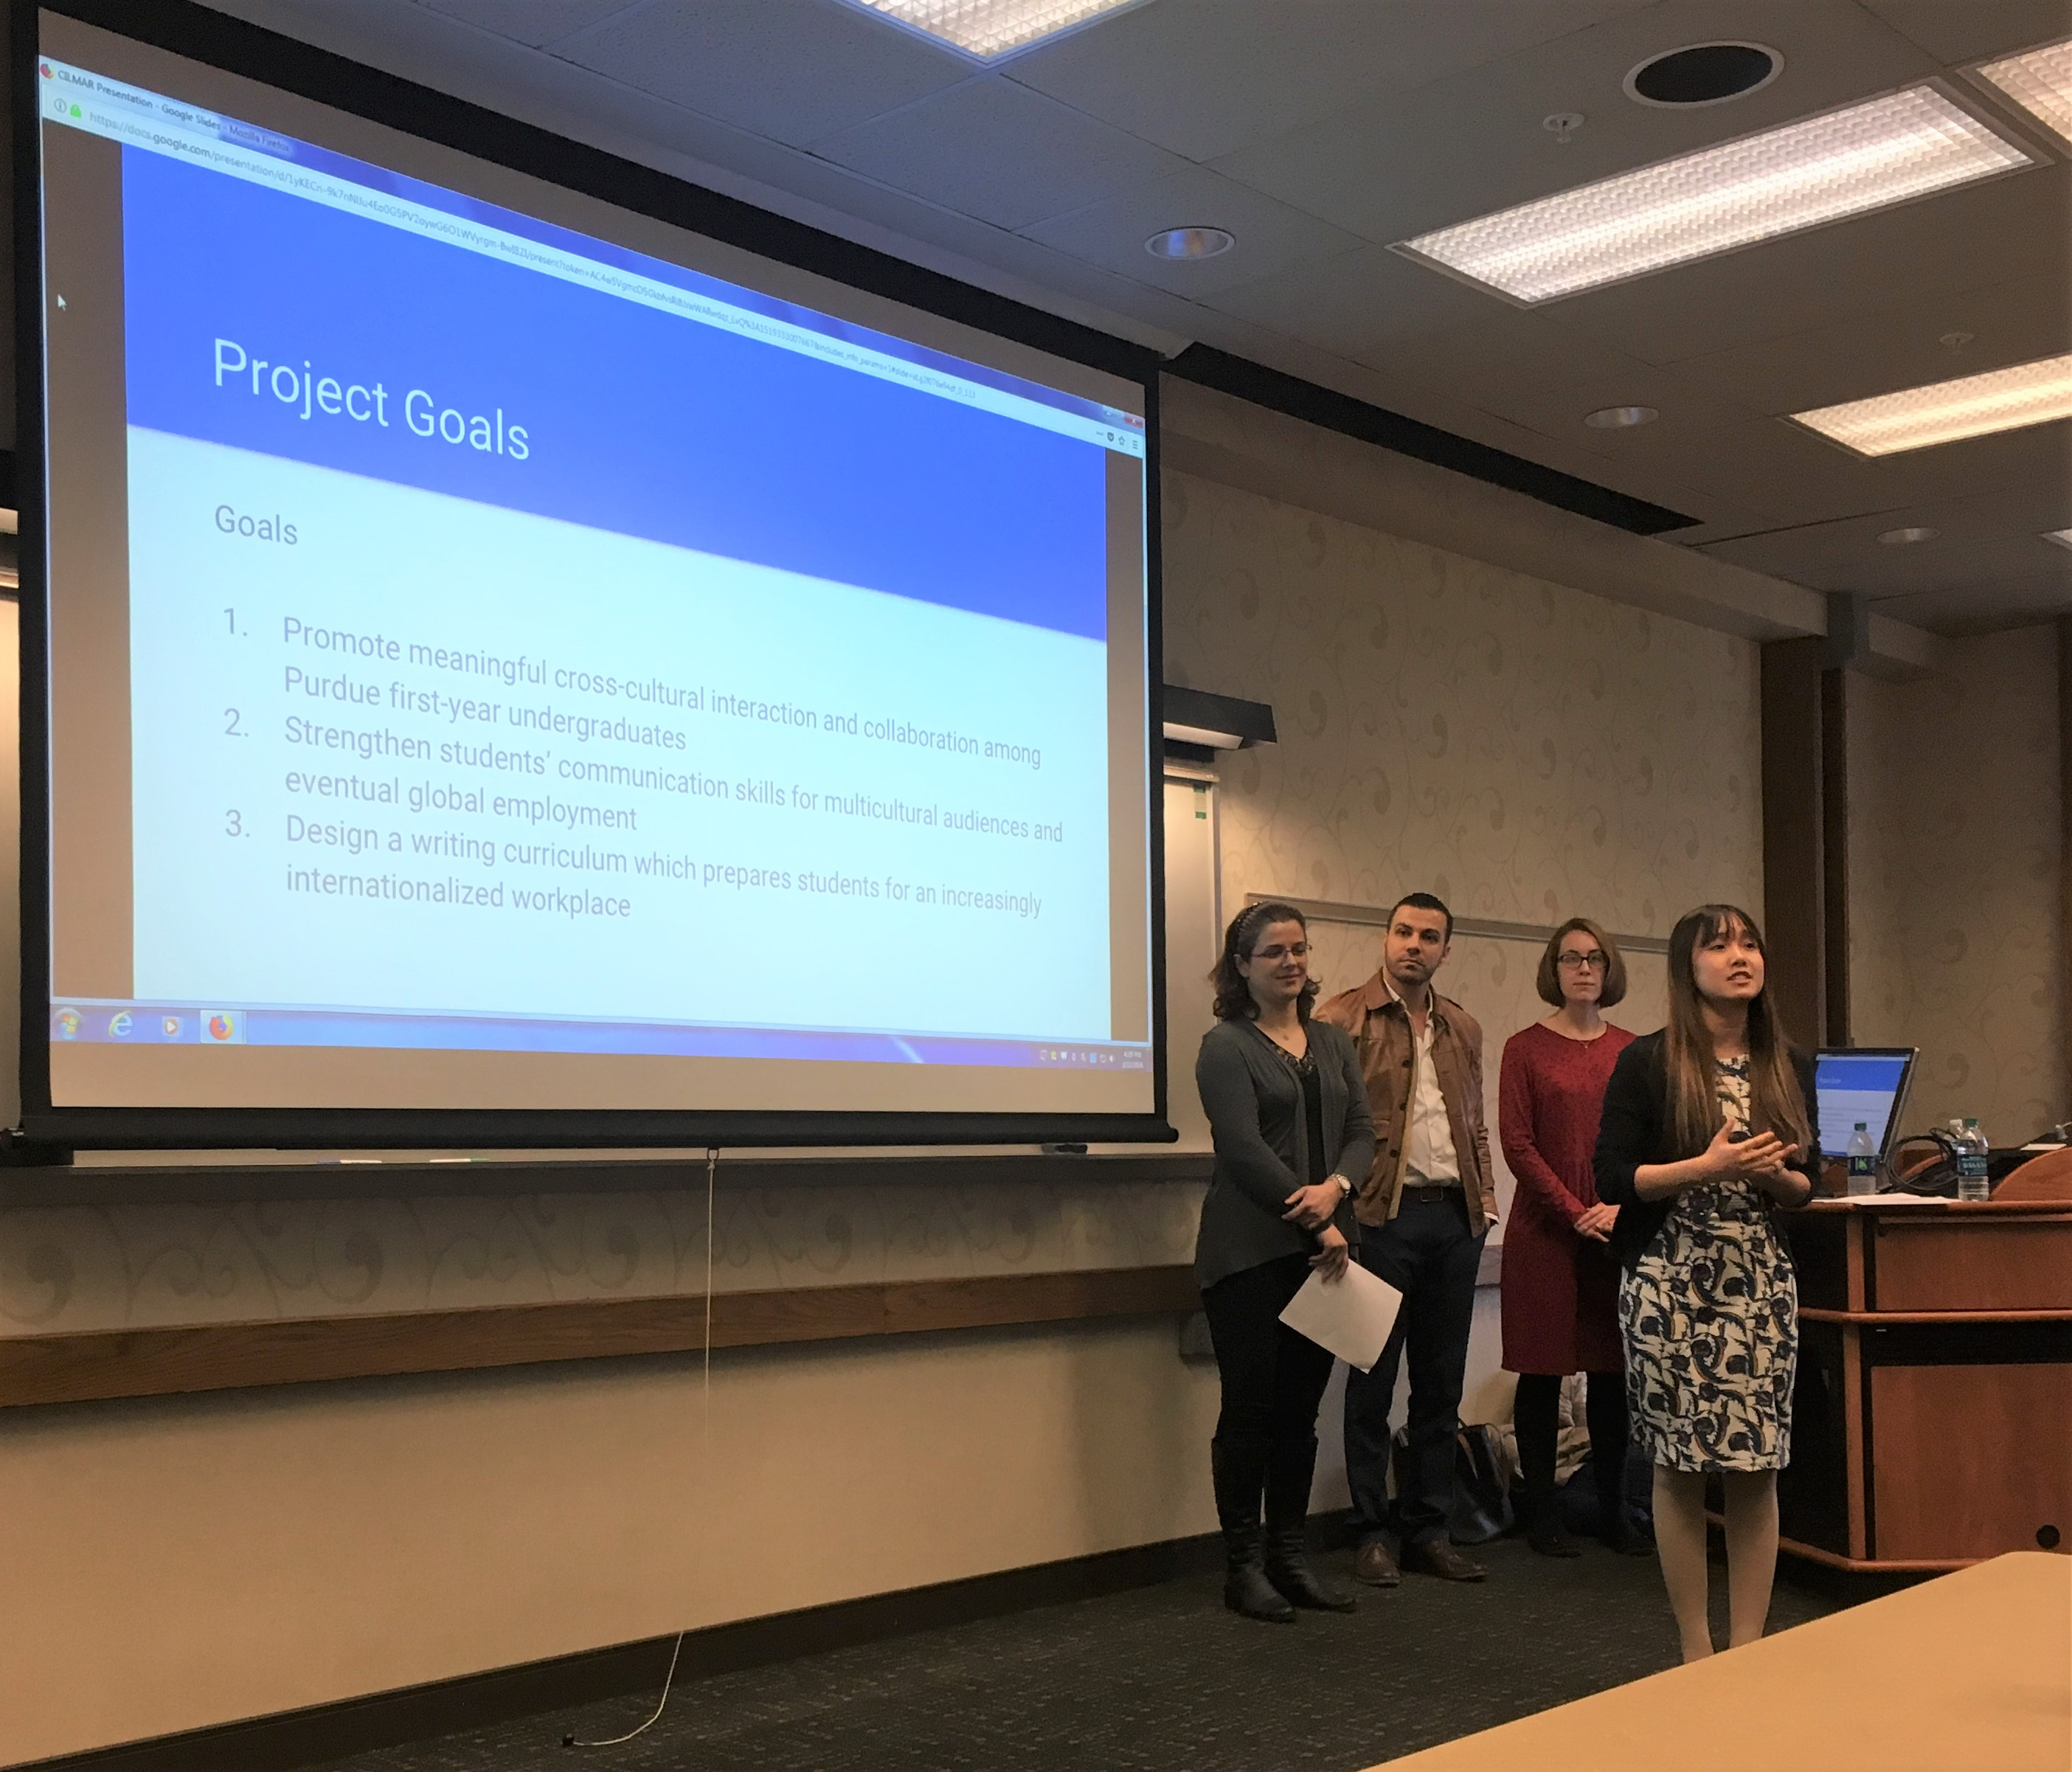 Research team presentation. Three team members standing and listening; Phuong speaking. PPT slide has the project goals displayed.